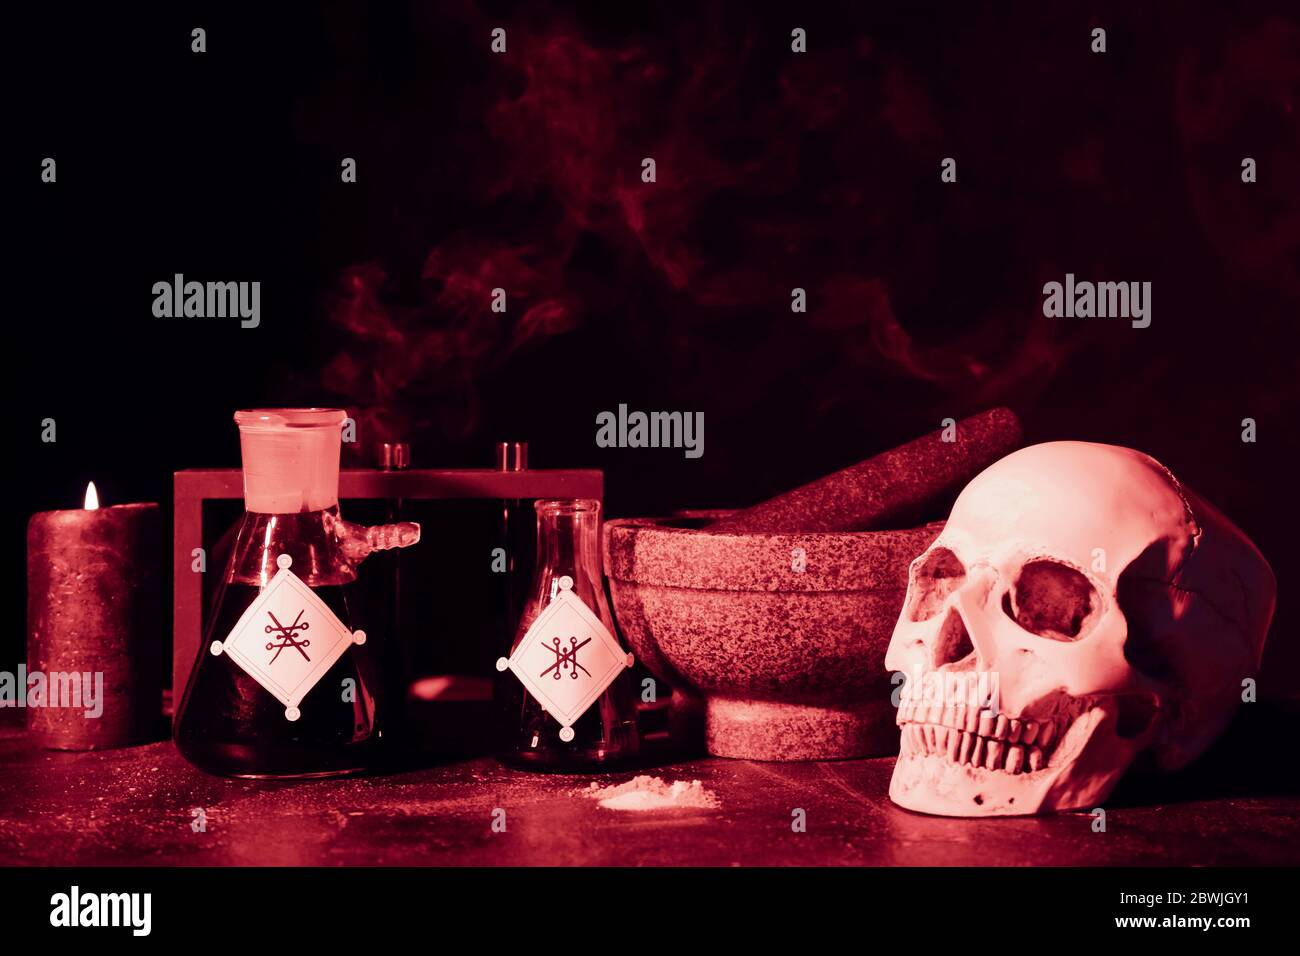 Potions, human skull, mortar and pestle on alchemist's table Stock Photo